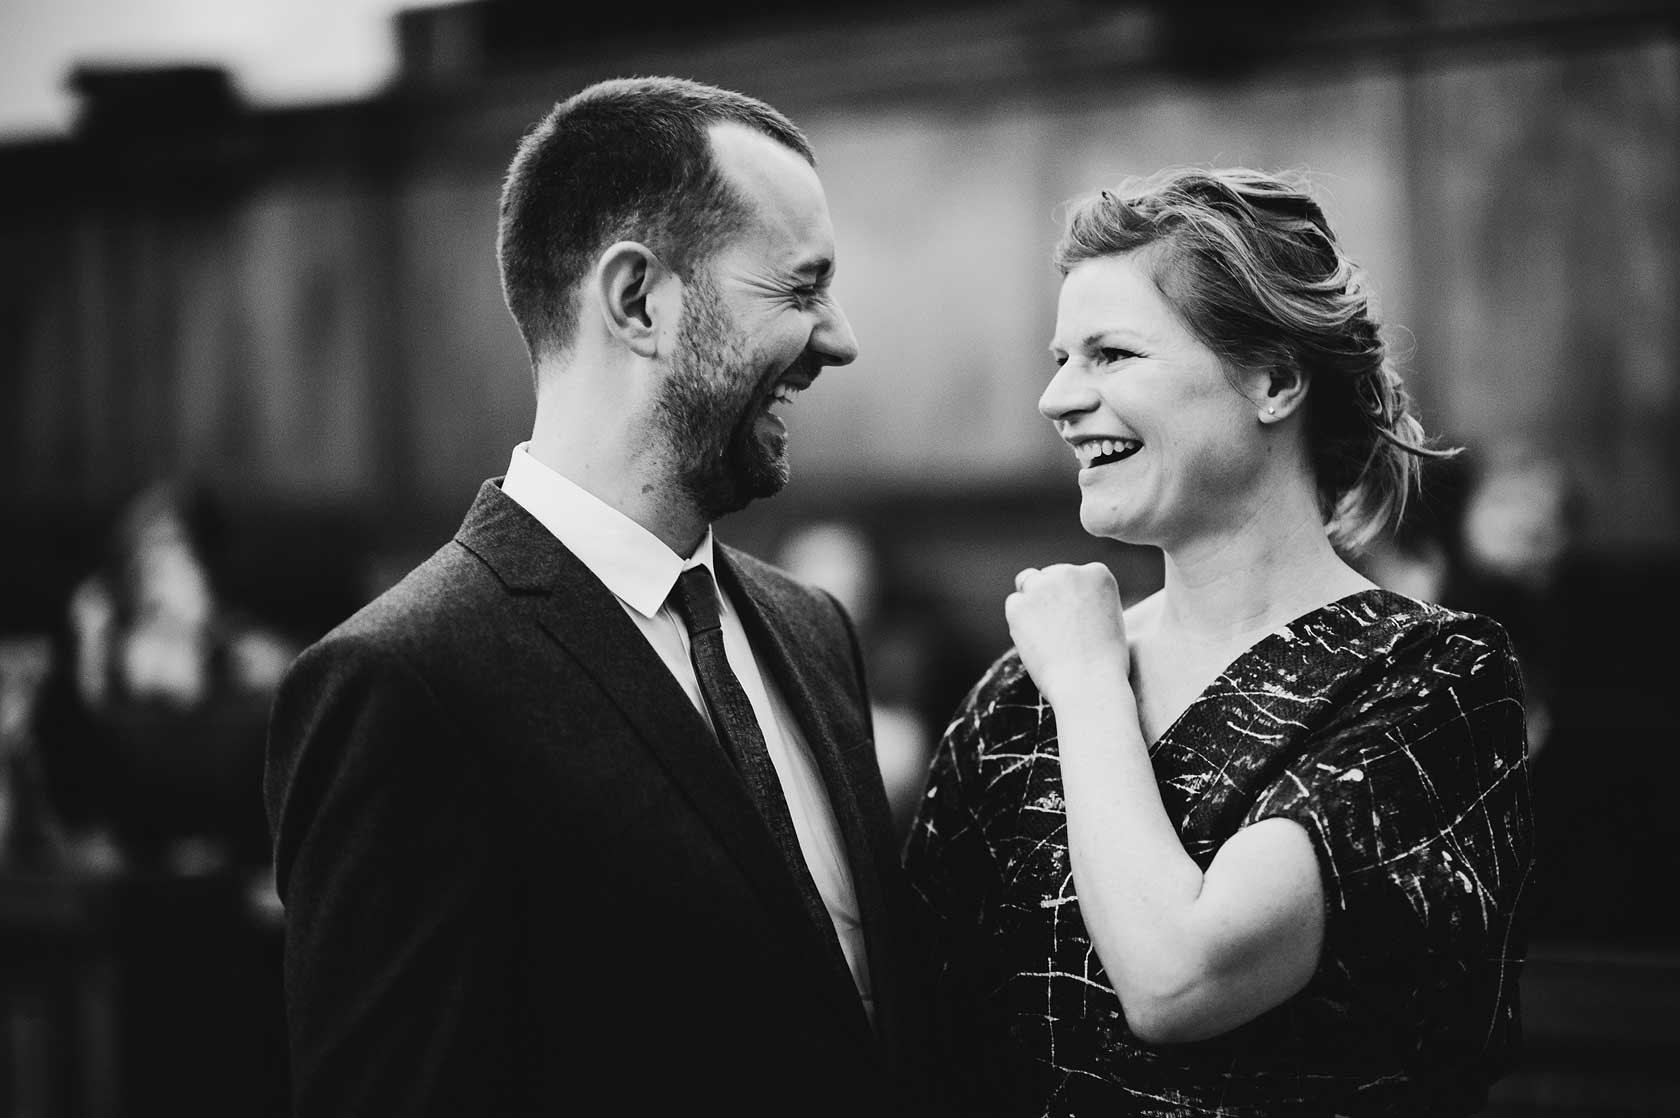 Reportage Wedding Photography at Town Hall Hotel